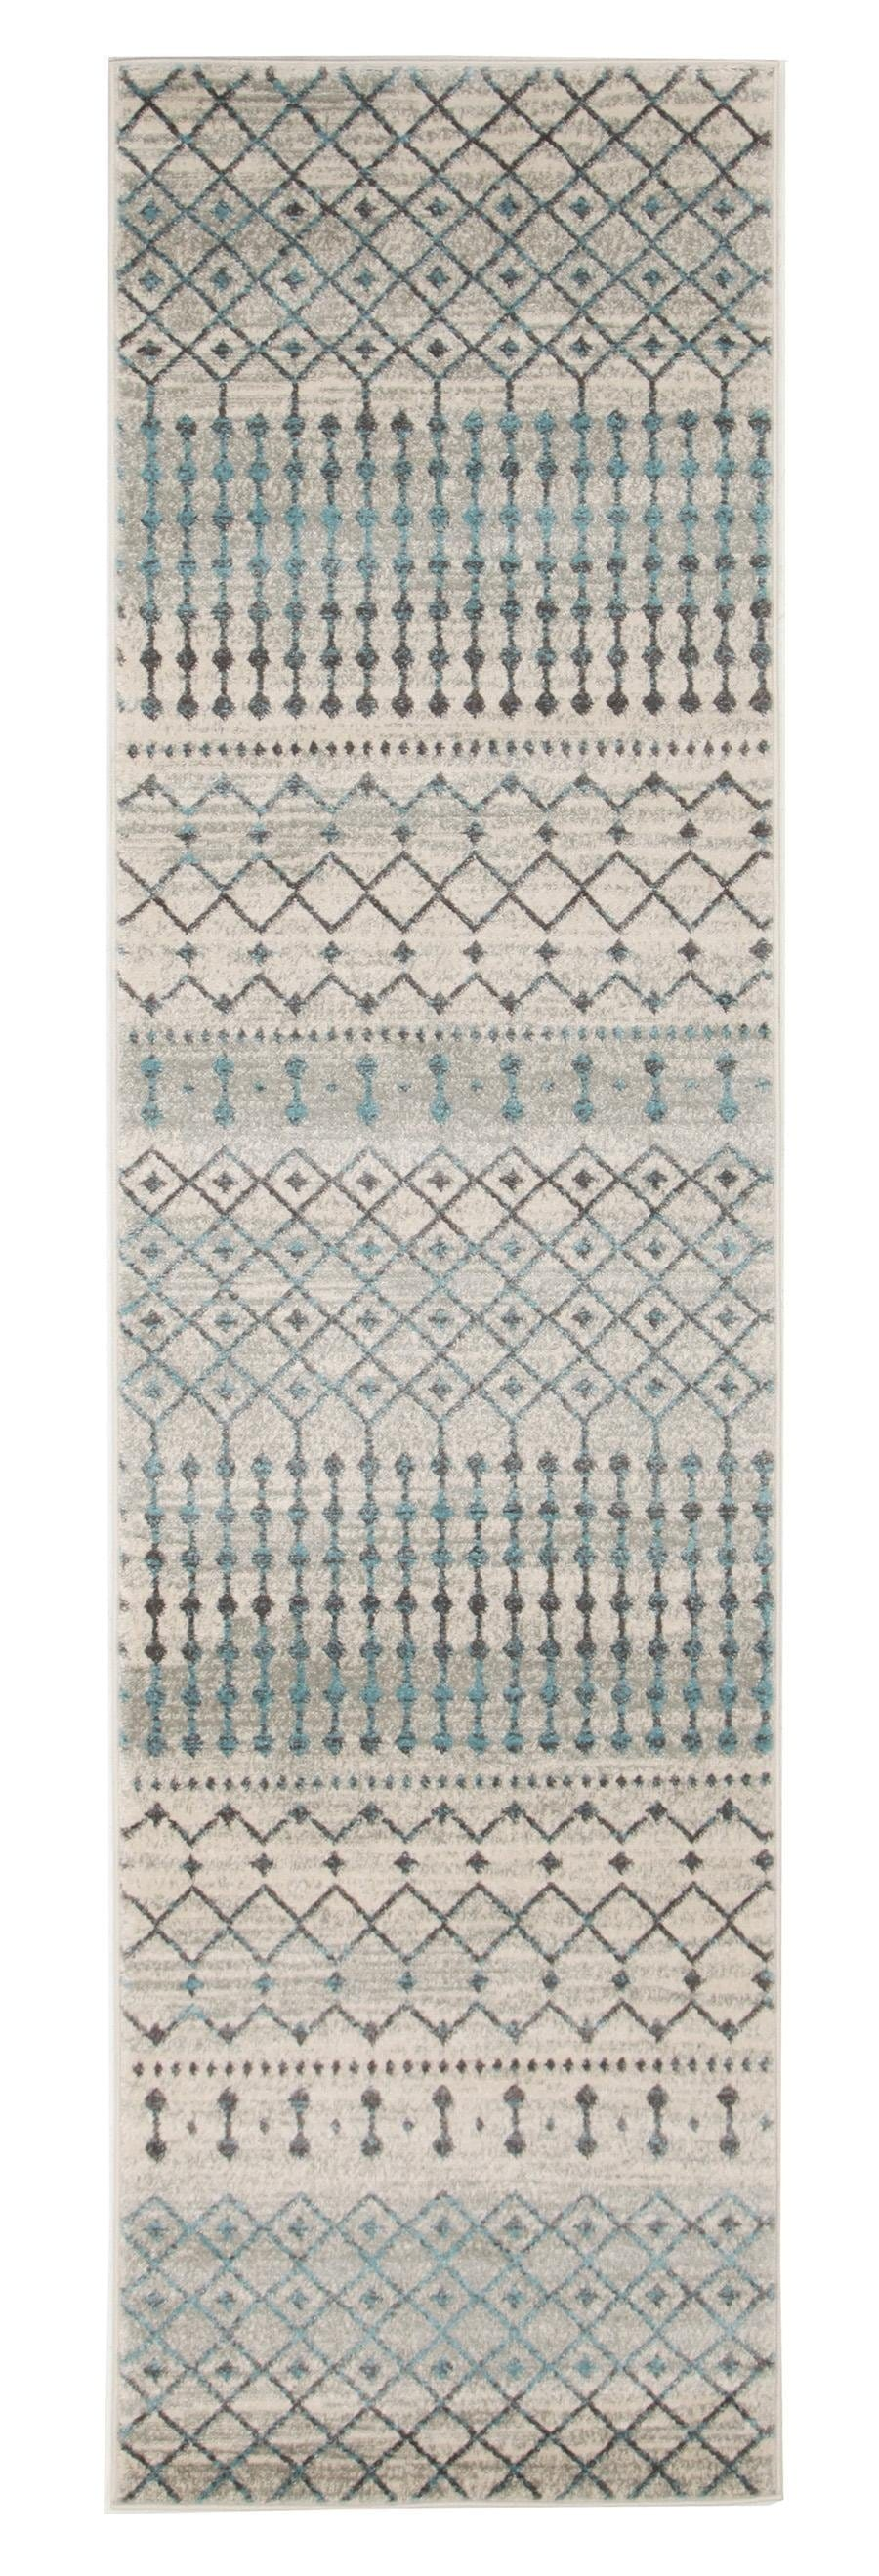 Gramercy Grey & Blue Distressed Runner Rug